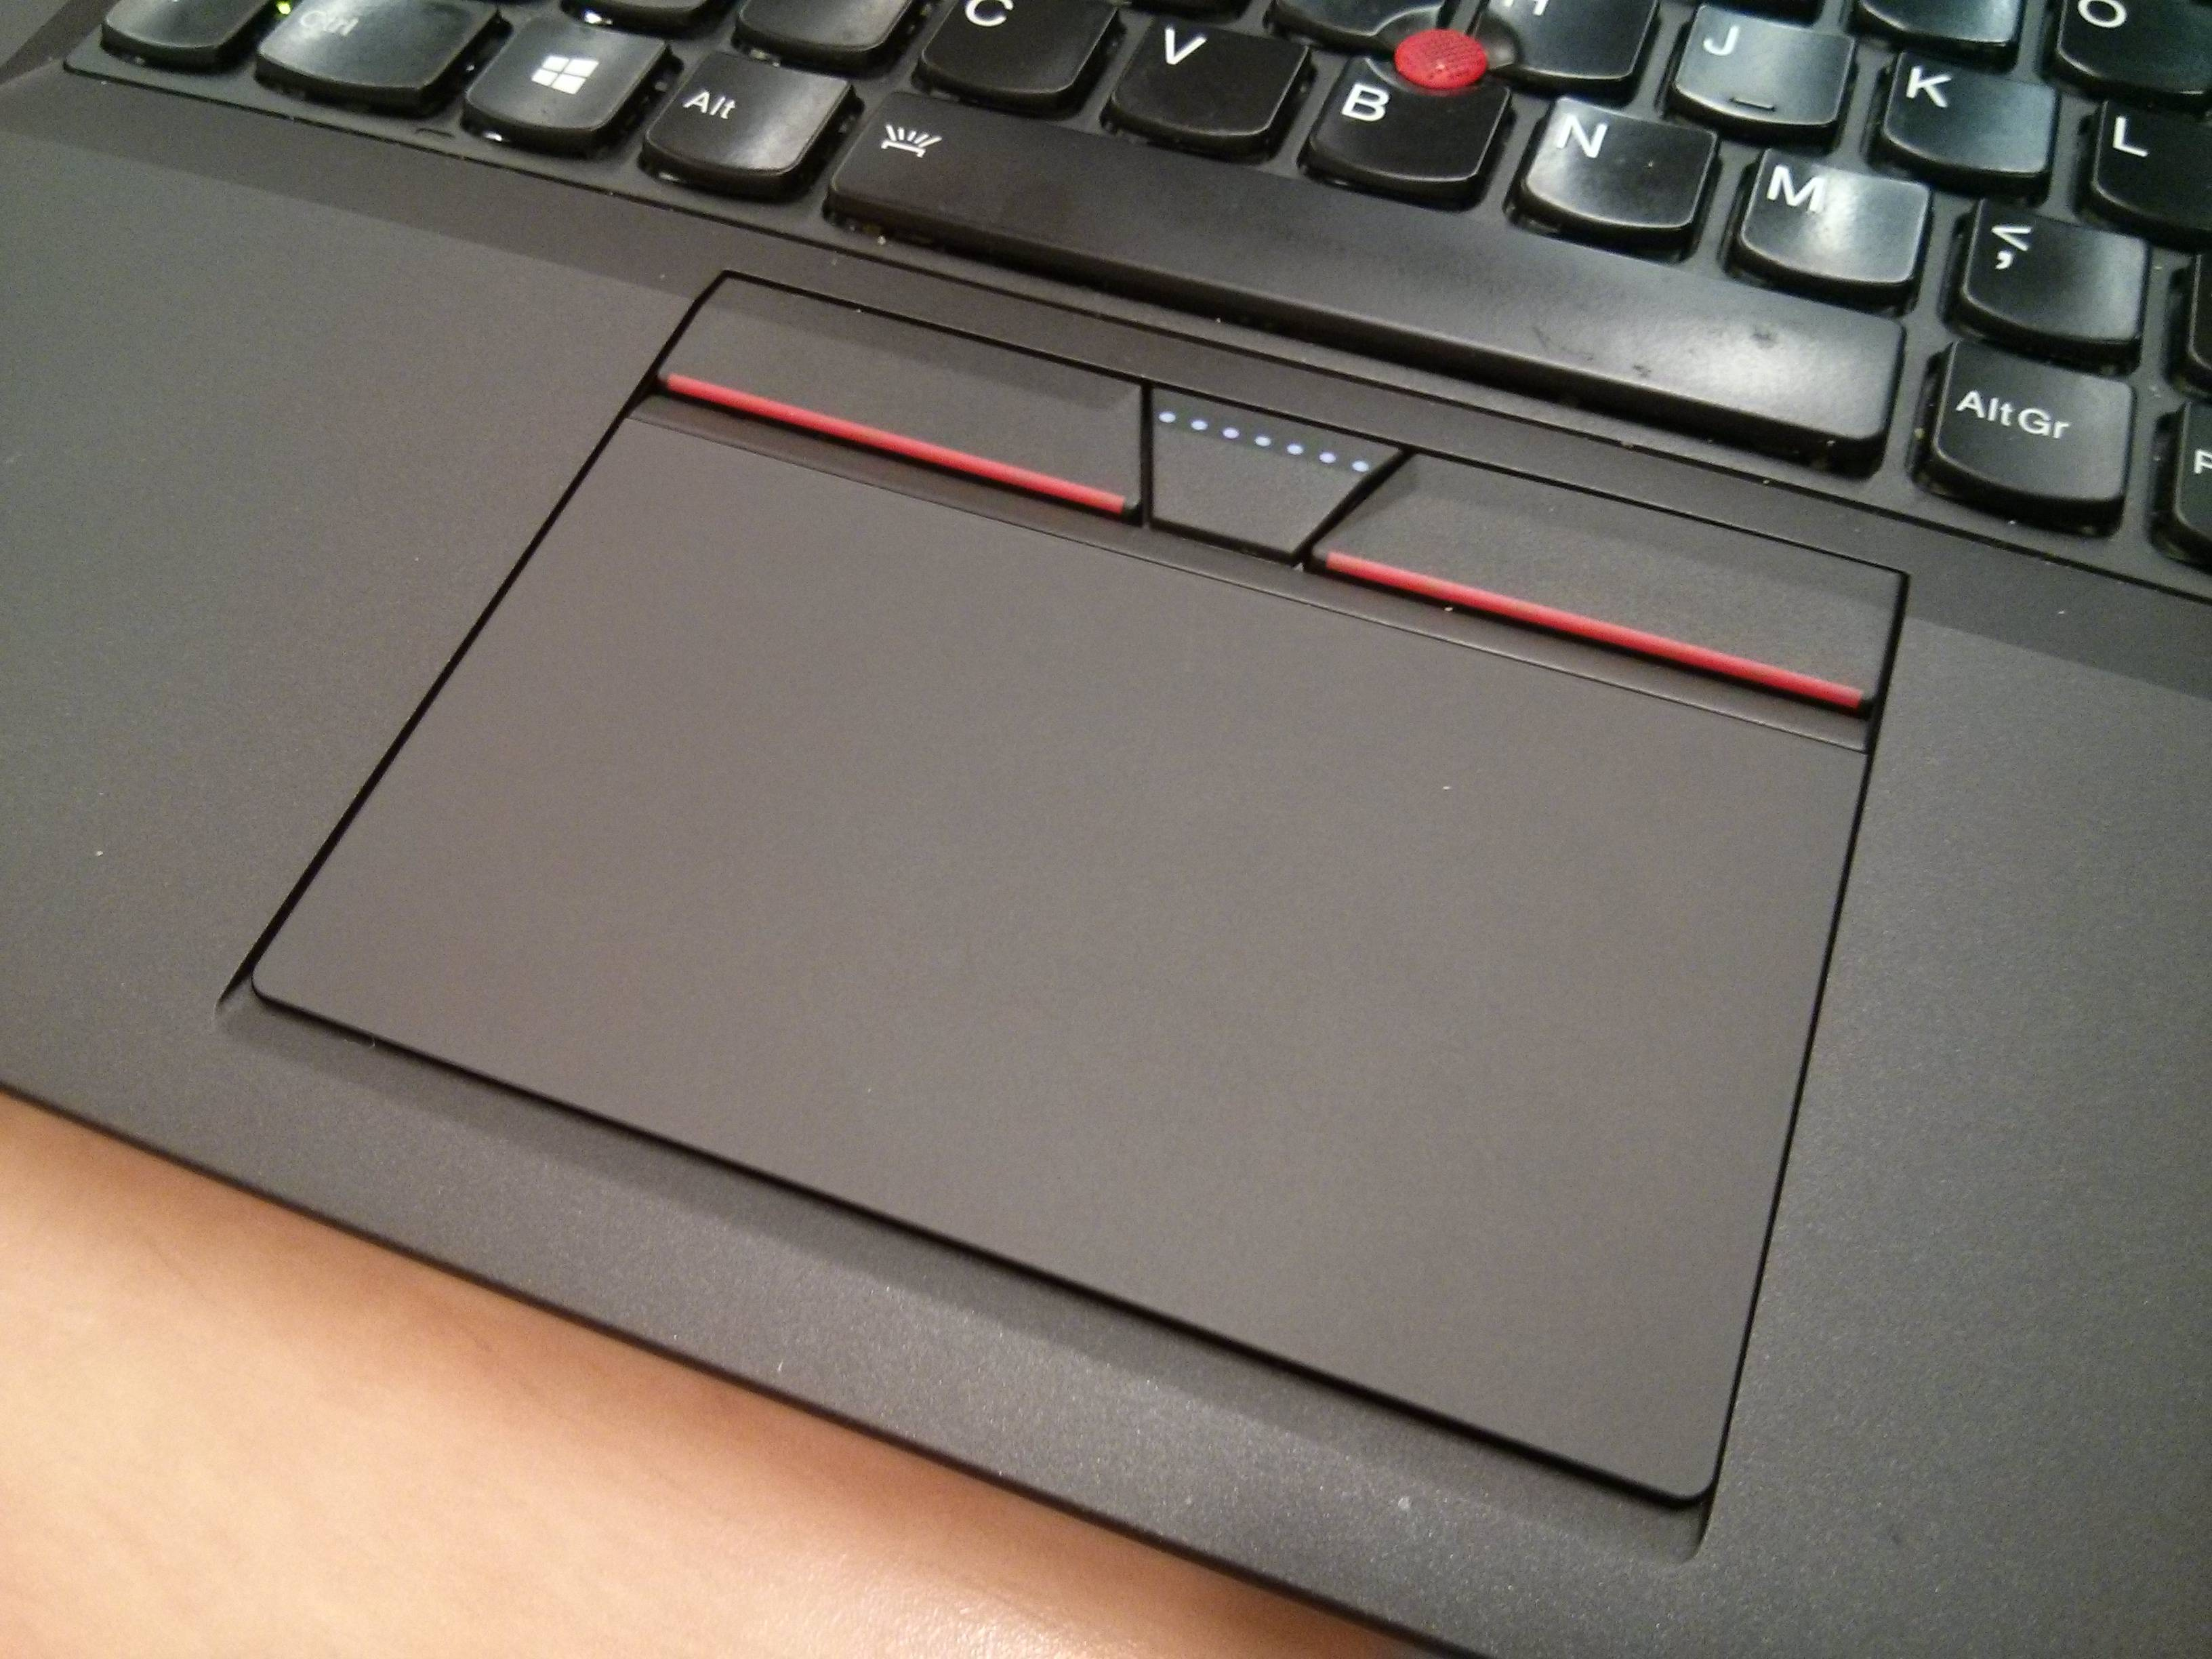 New Touchpad with Physical Buttons